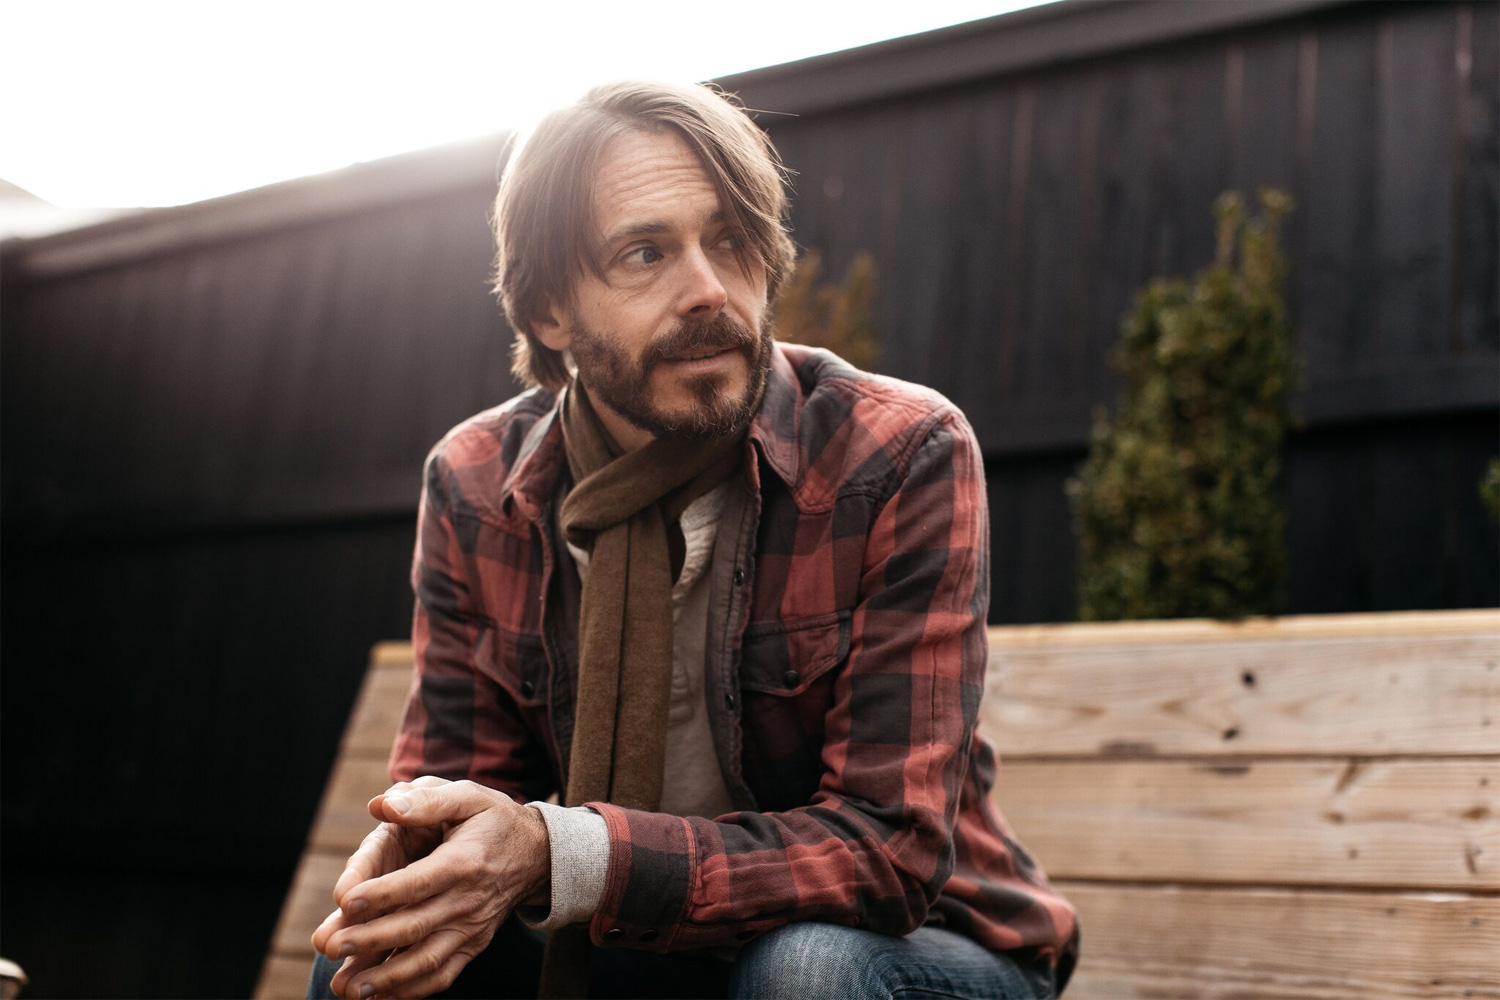 Interview with Glen Phillips of Toad The Wet Sprocket